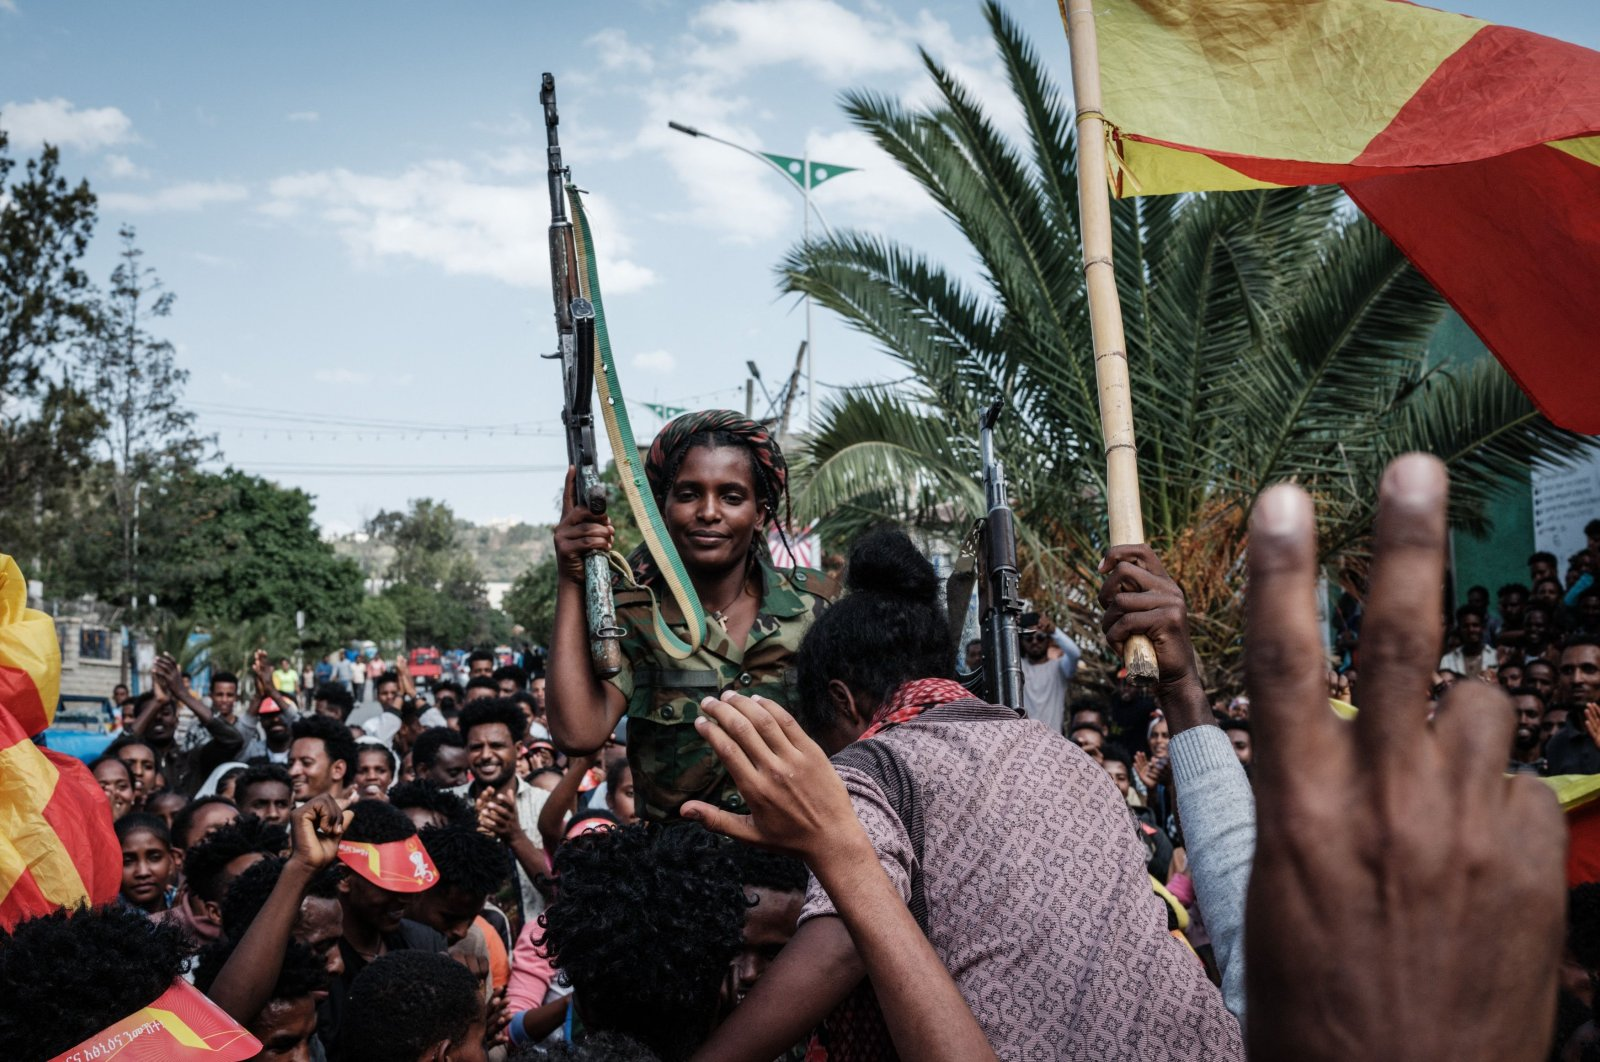 Soldiers of the Tigray Defense Force (TDF) celebrate their return on a street in Mekele, the capital of Tigray region, Ethiopia, June 29, 2021. (AFP Photo)